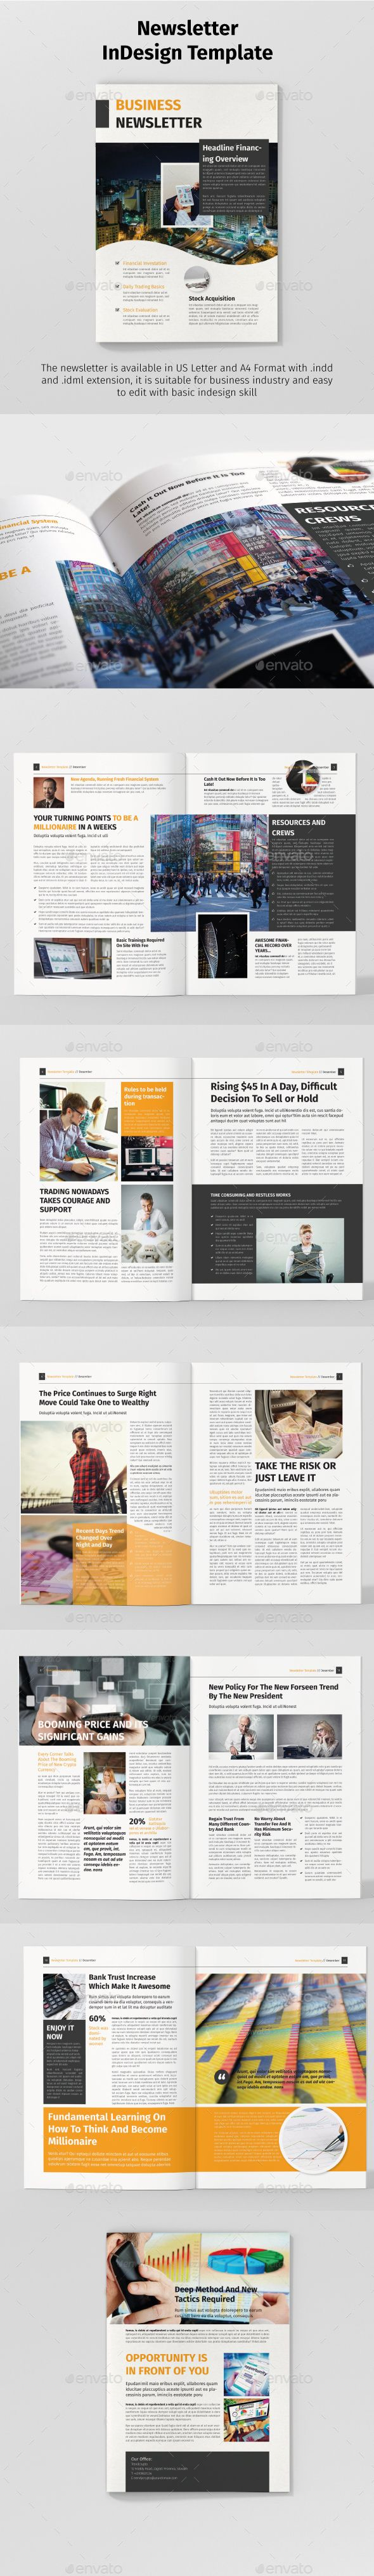 Newsletter Template 12 pages hi quality design professional and modern Magazine Layout template